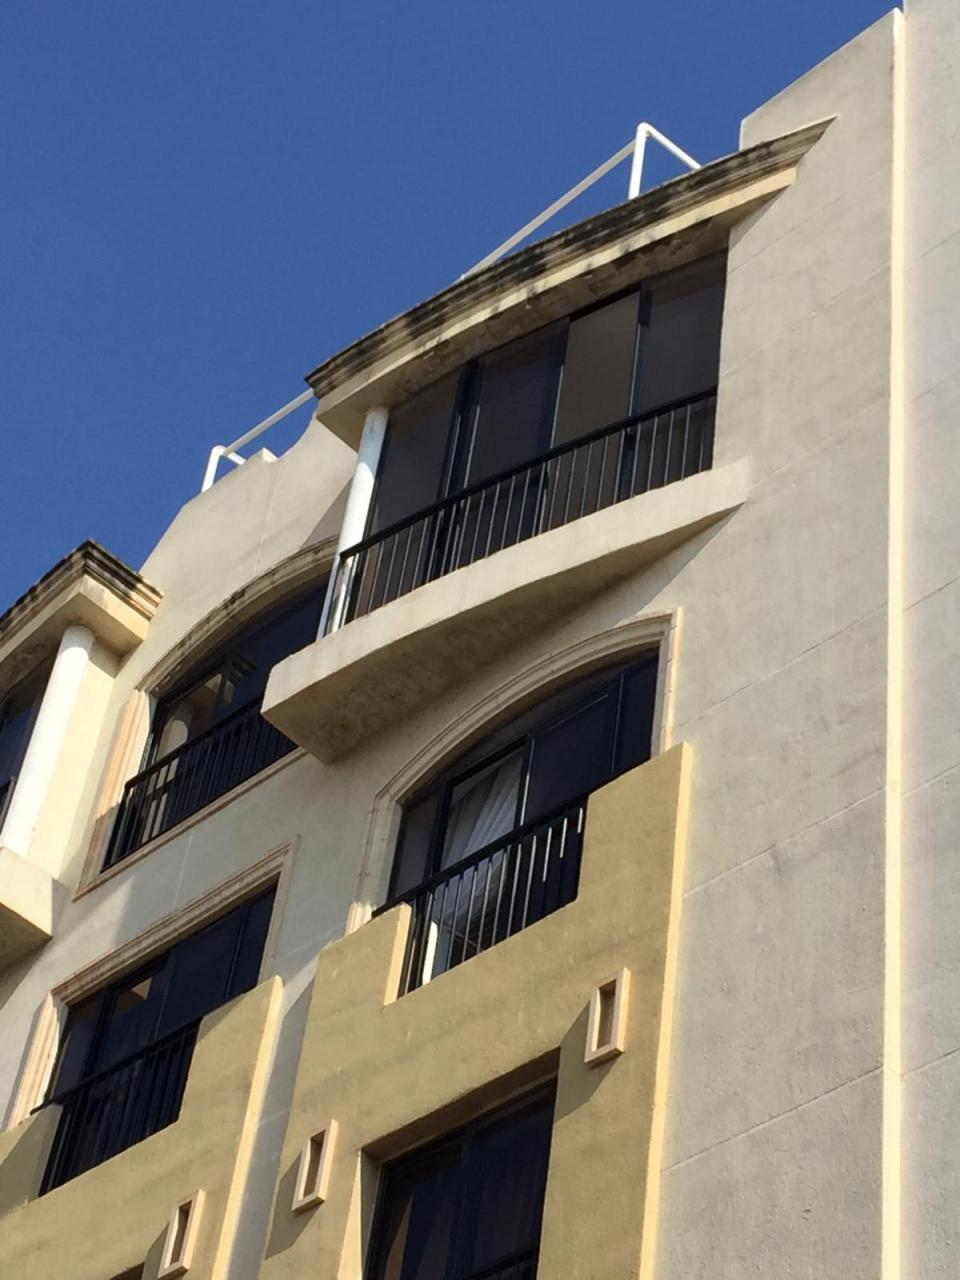 The victim fell from the balcony on the seventh floor of this apartment block in Gzira.